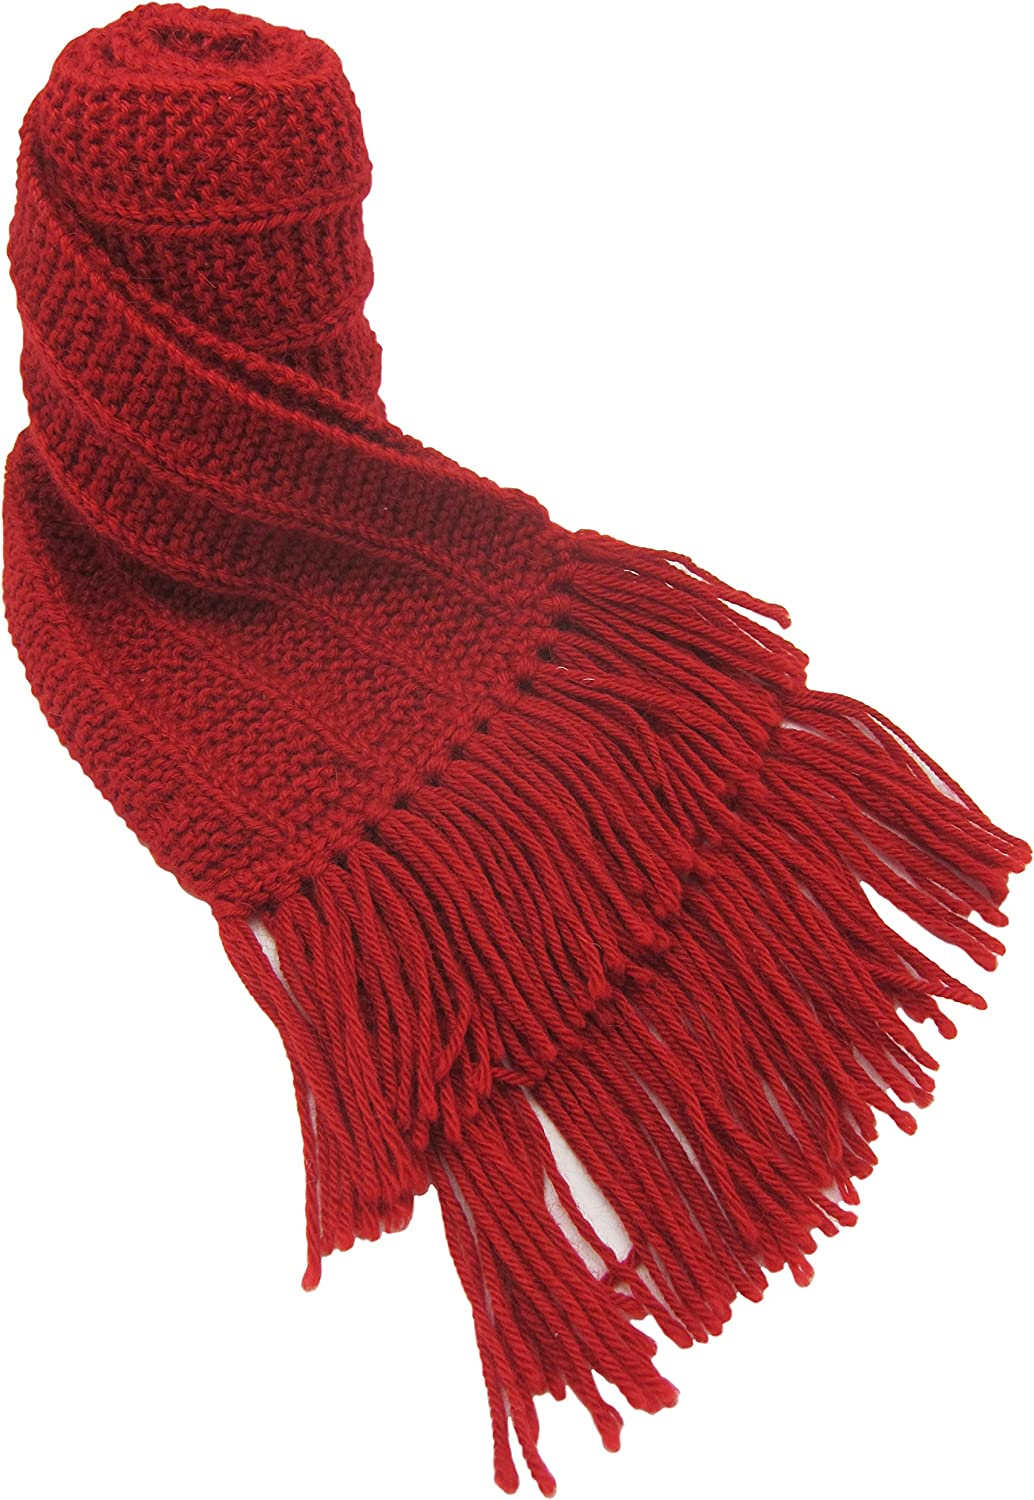 Handmade Pure Alpaca Knitted by Hand Scarf - Coziest Red (Made to Order)